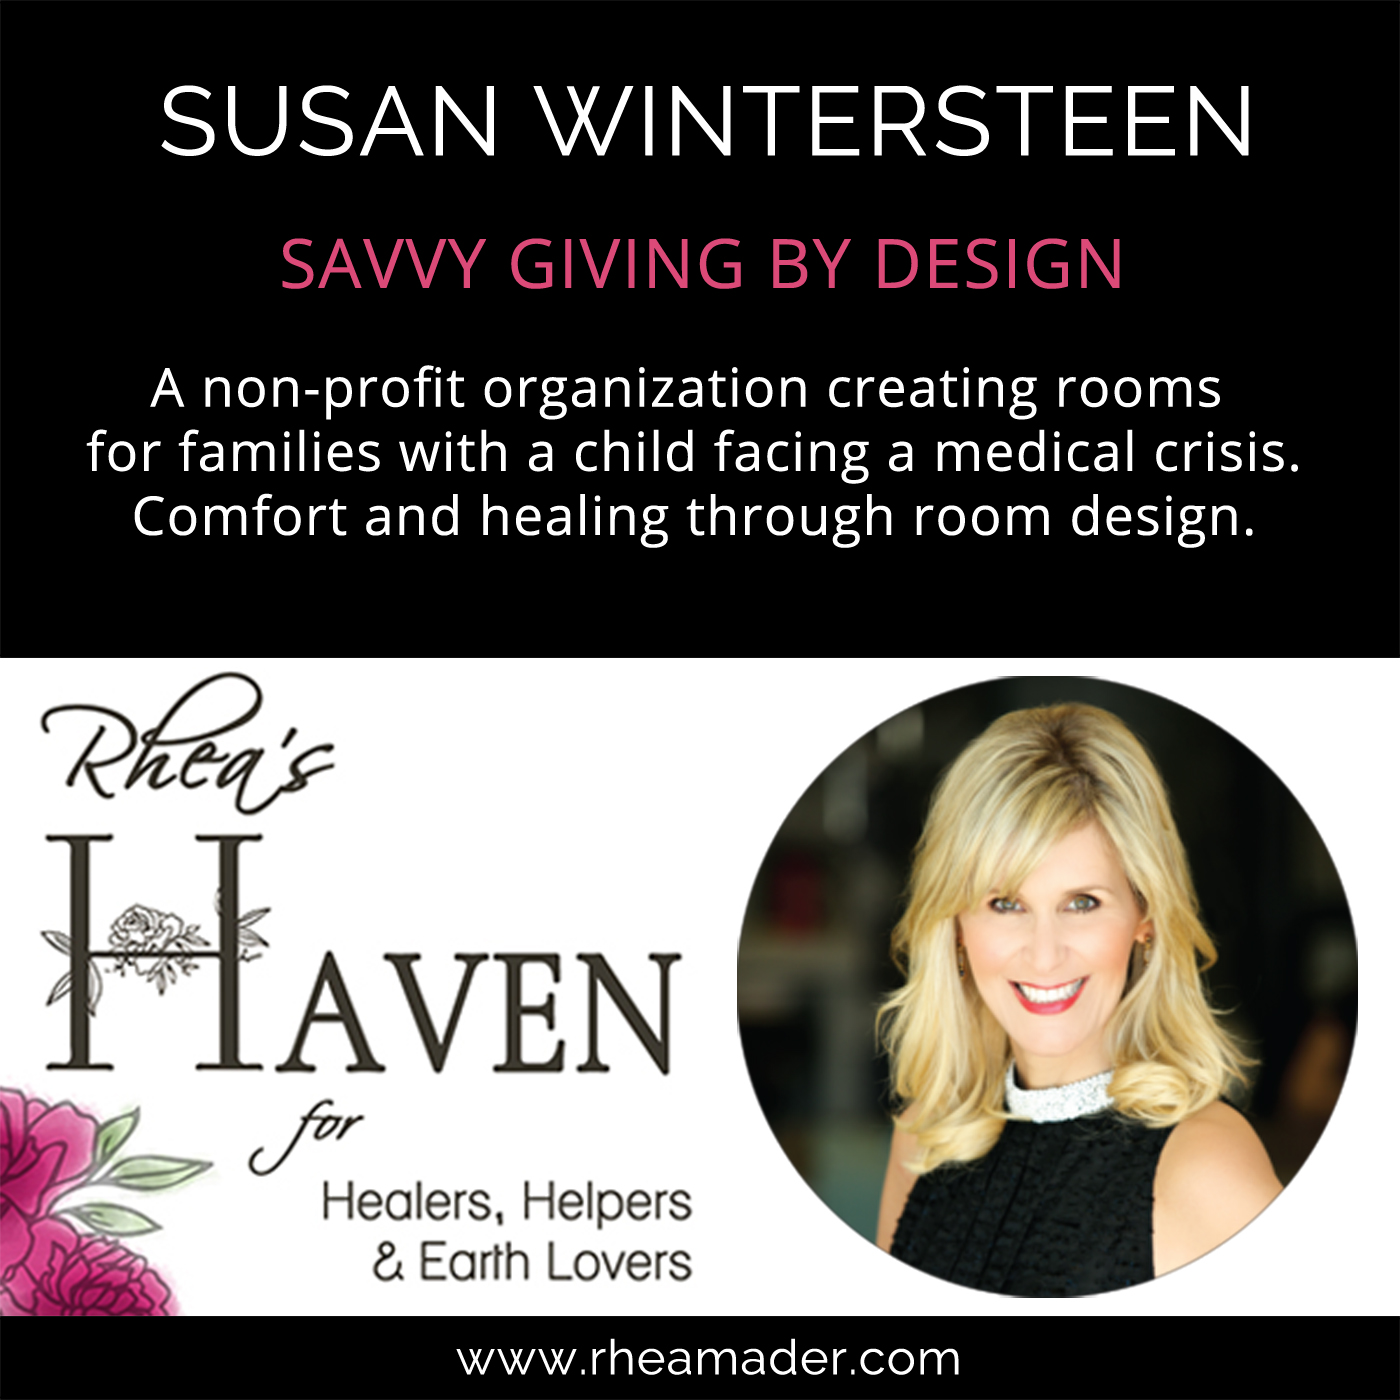 SUSAN WINTERSTEEN:  Savvy Giving By Design